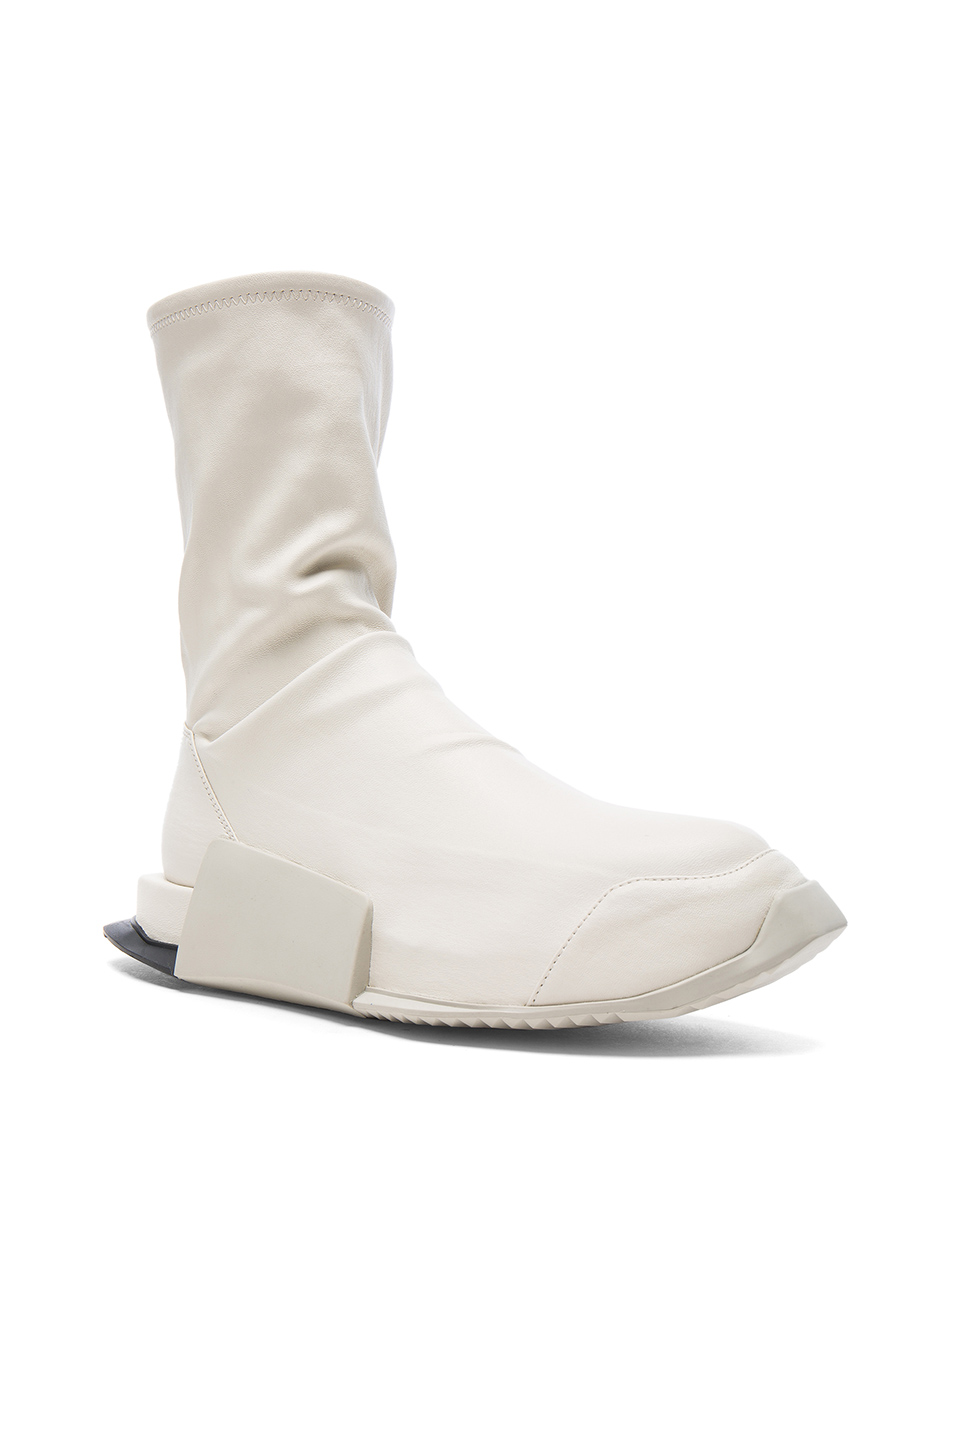 Photo of Rick Owens x Adidas Level Stretch Leather Socks in White - shop Rick Owens menswear